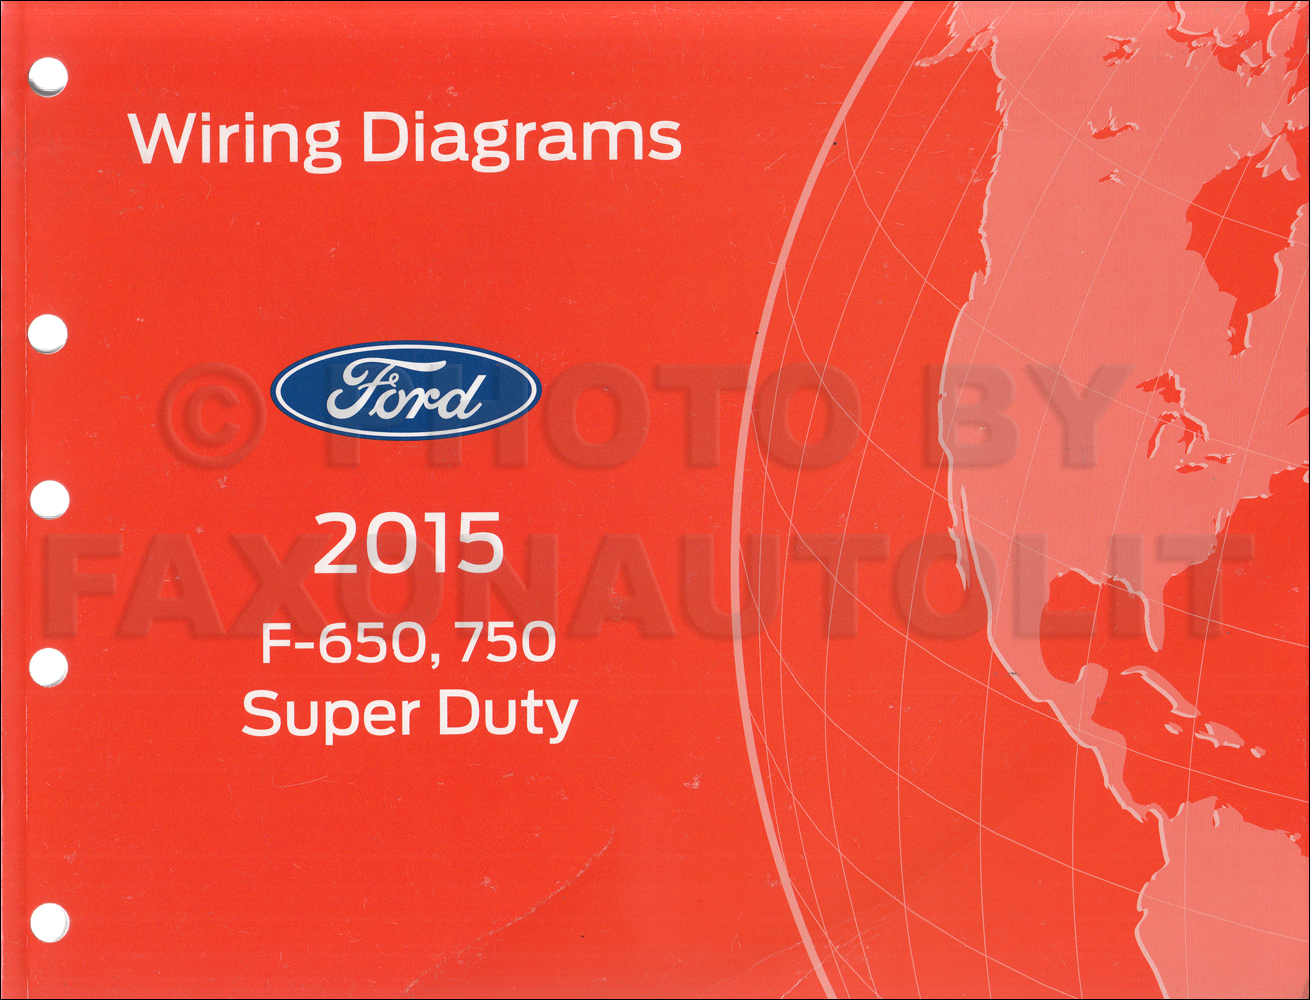 hight resolution of 2015 ford f 650 and f 750 super duty truck wiring diagram manual 2015 f650 wiring diagram 2015 f650 wiring diagram